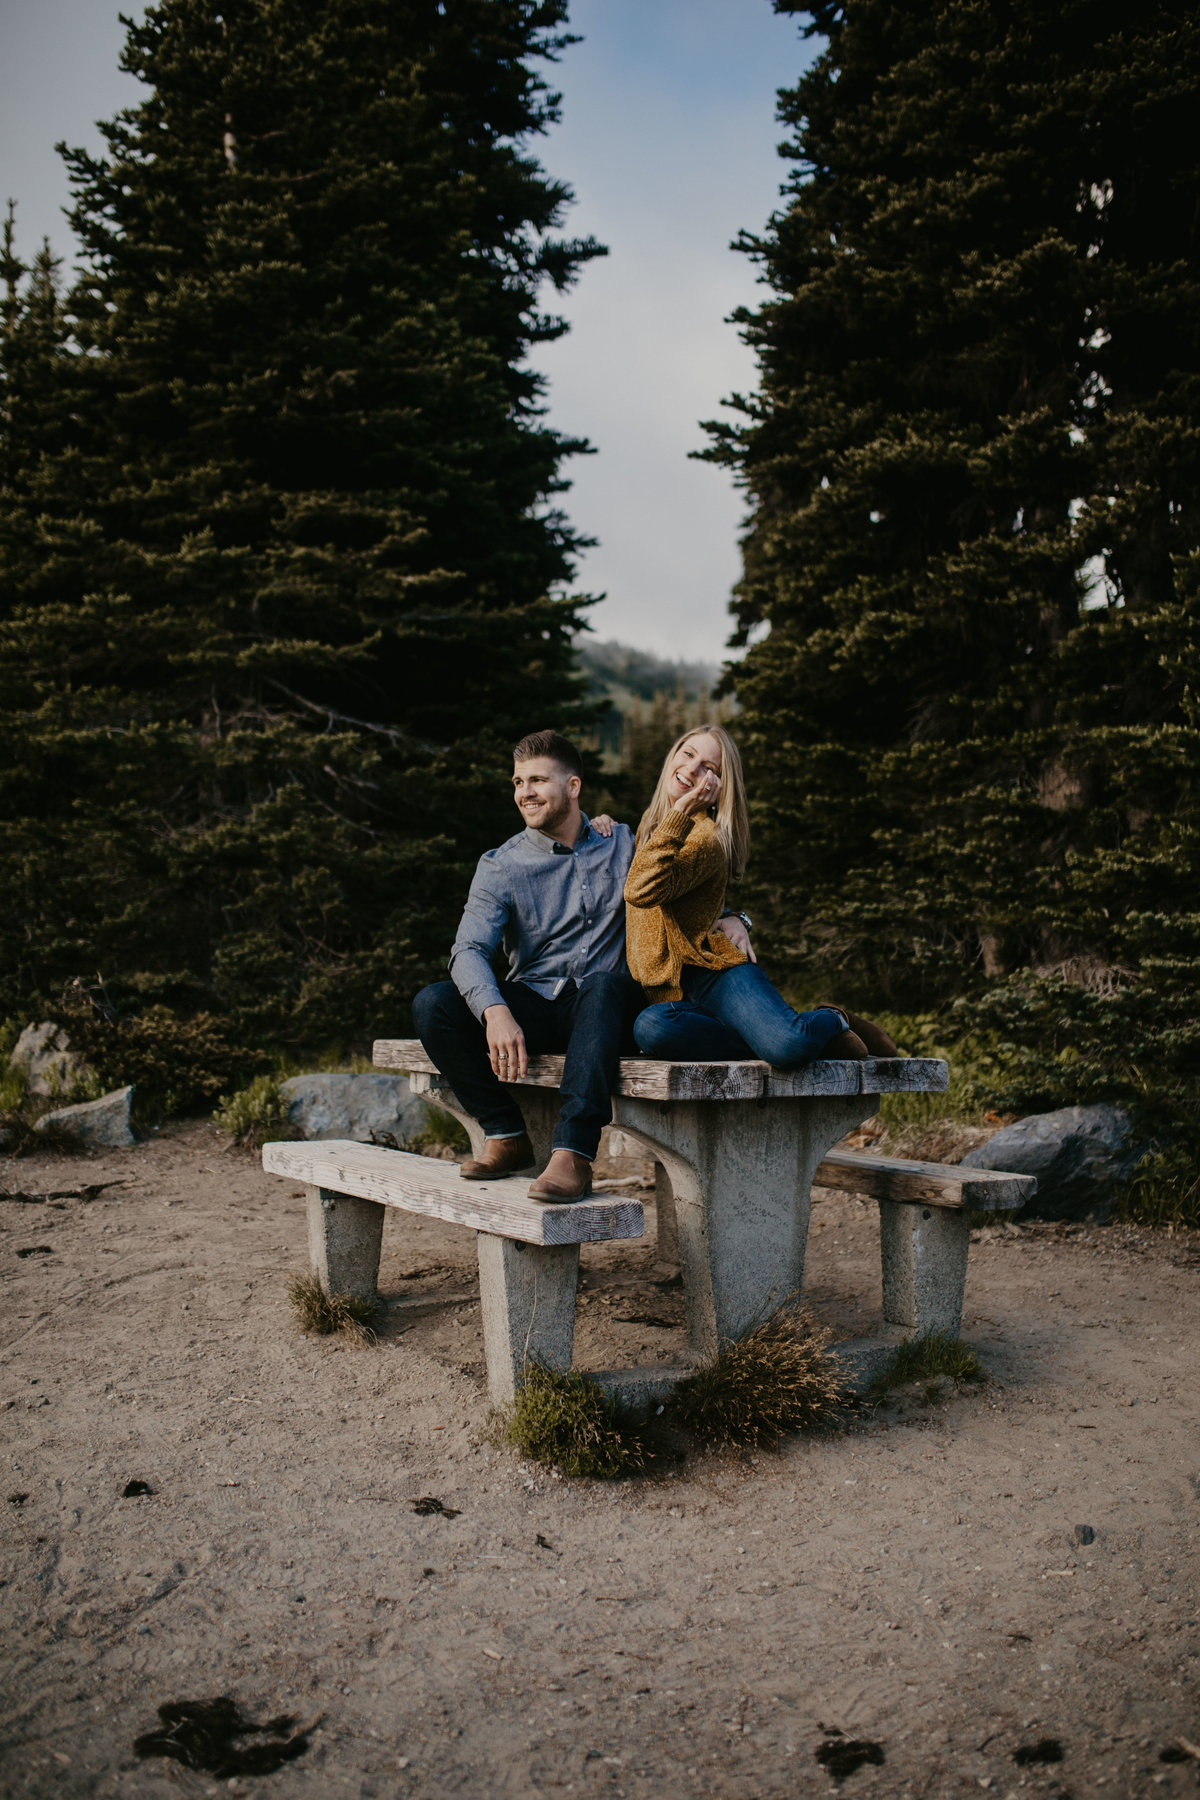 Marnie_Cornell_Photography_Engagement_Mount_Rainier_RK-148